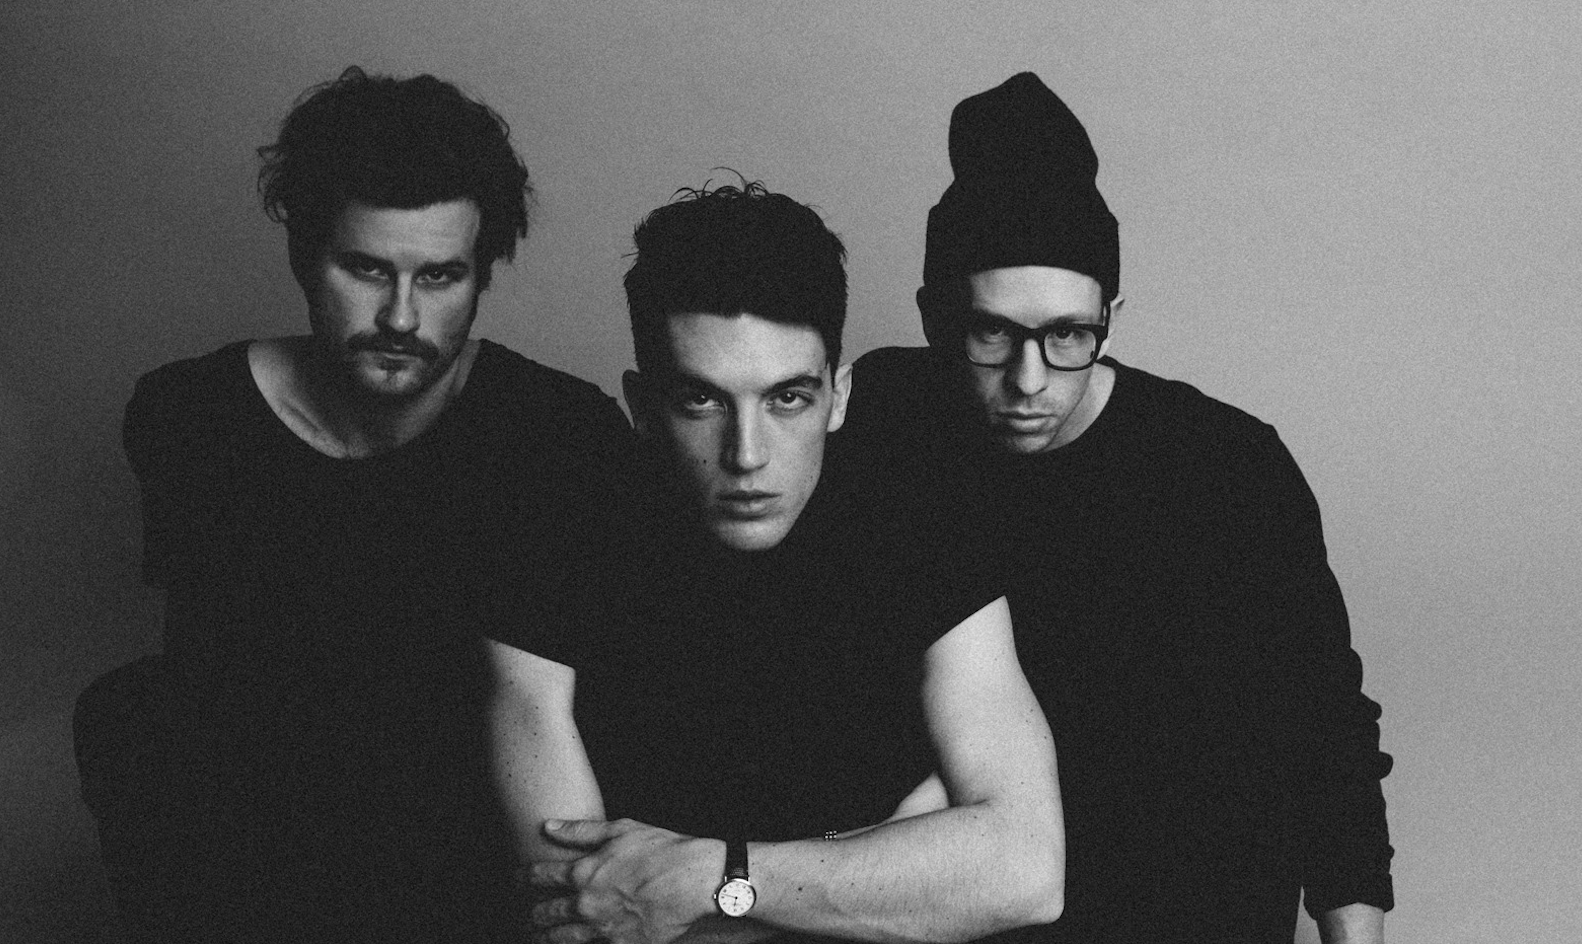 LA based indie-rockers LANY discuss touring, 'Make Out' EP and more